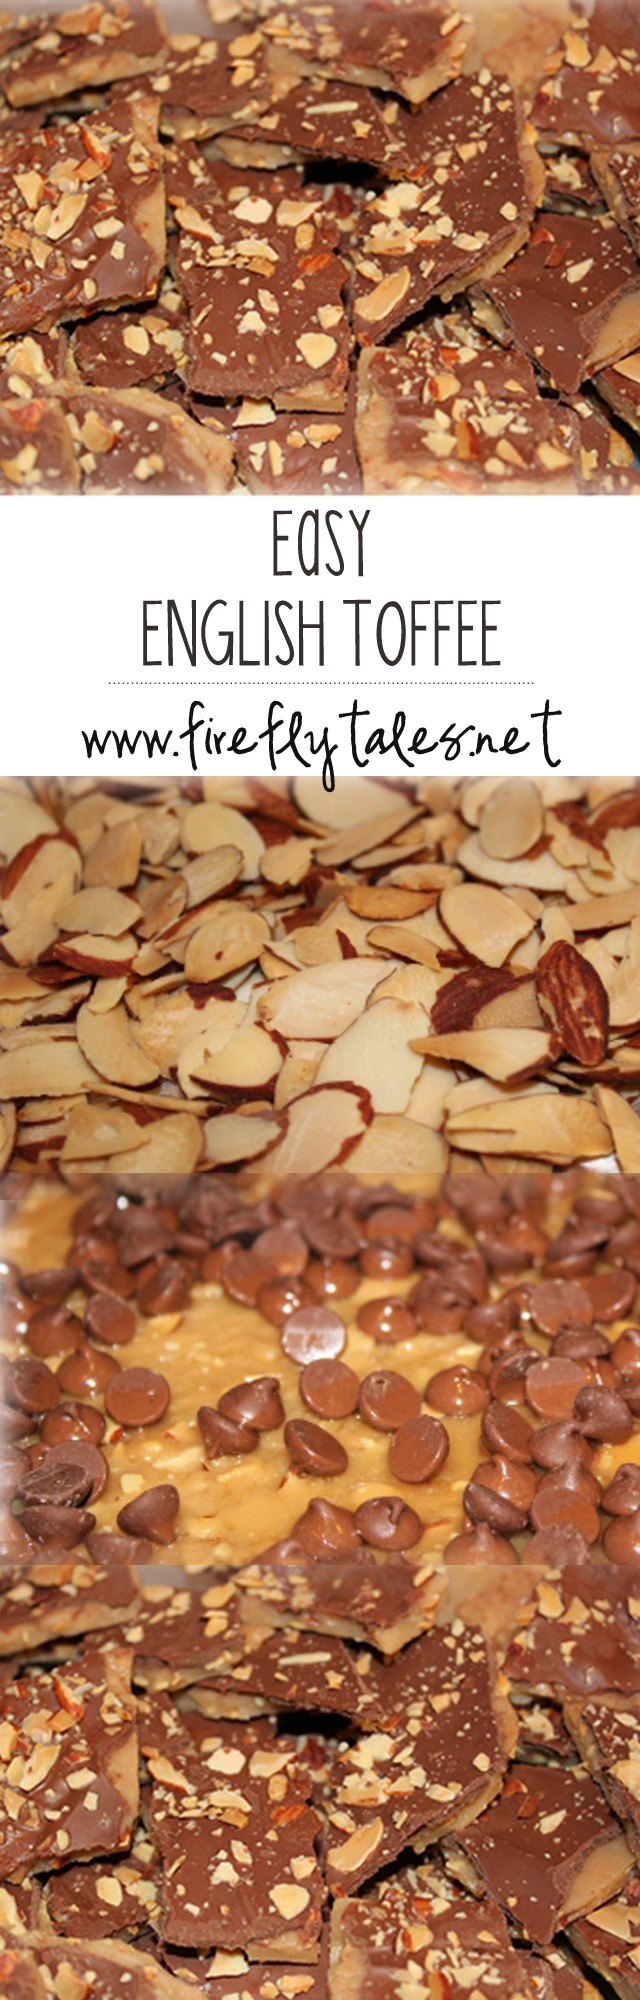 Easy English Toffee Recipe | www.fireflytales.net